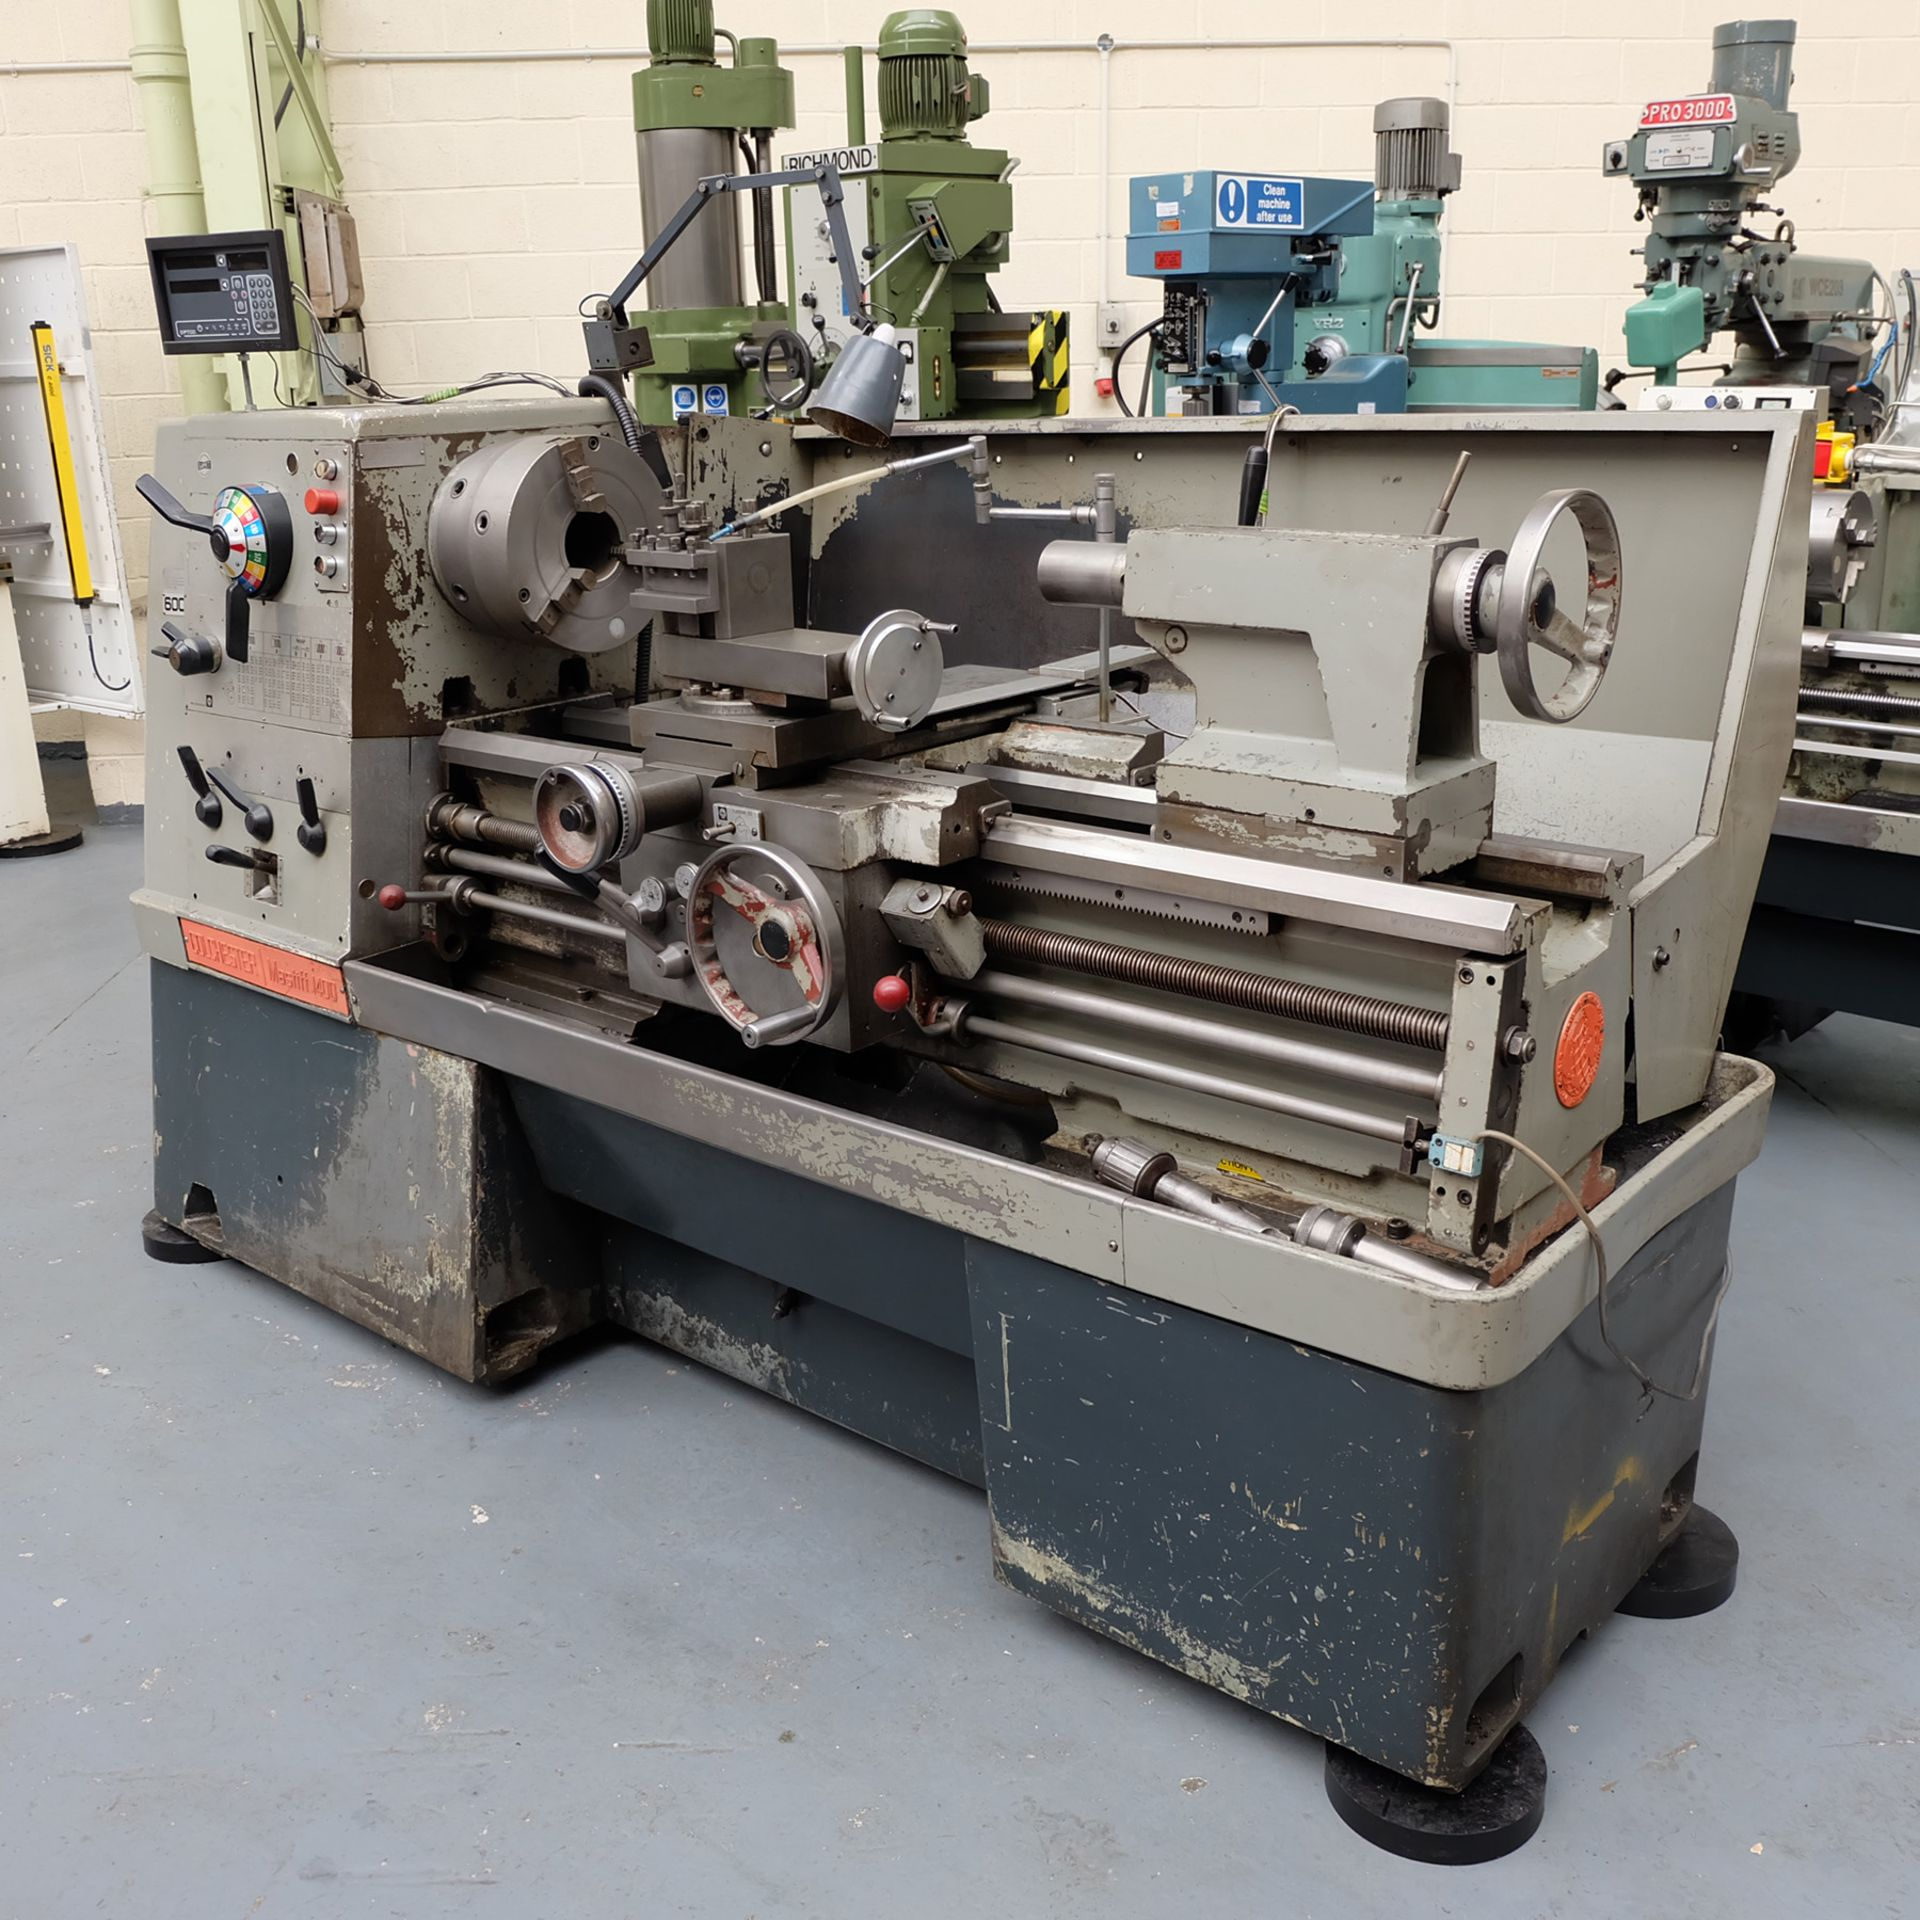 "Colchester Mastiff 1400 Gap Bed Centre Lathe. 21"" Swing Over Bed. 40"" Distance Between Centres. - Image 3 of 7"